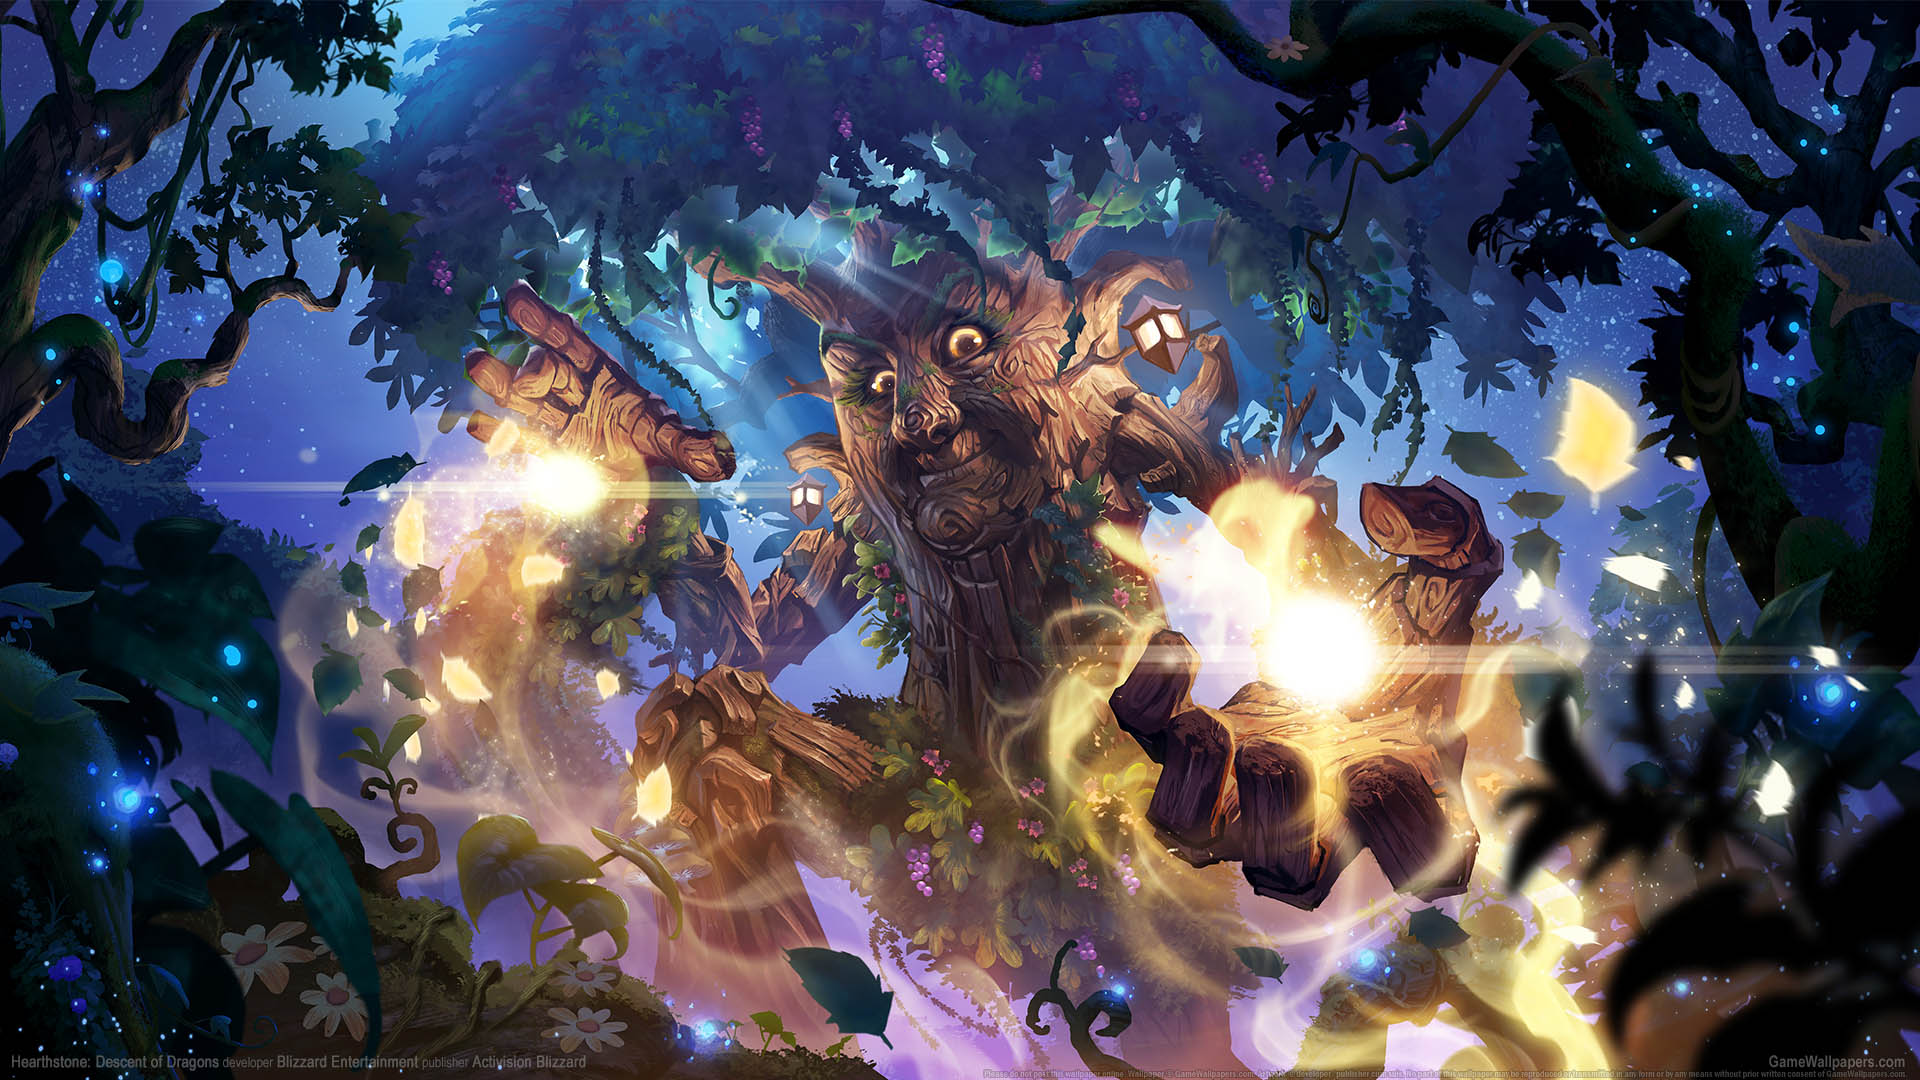 Hearthstone: Descent of Dragons fondo de escritorio 02 1920x1080